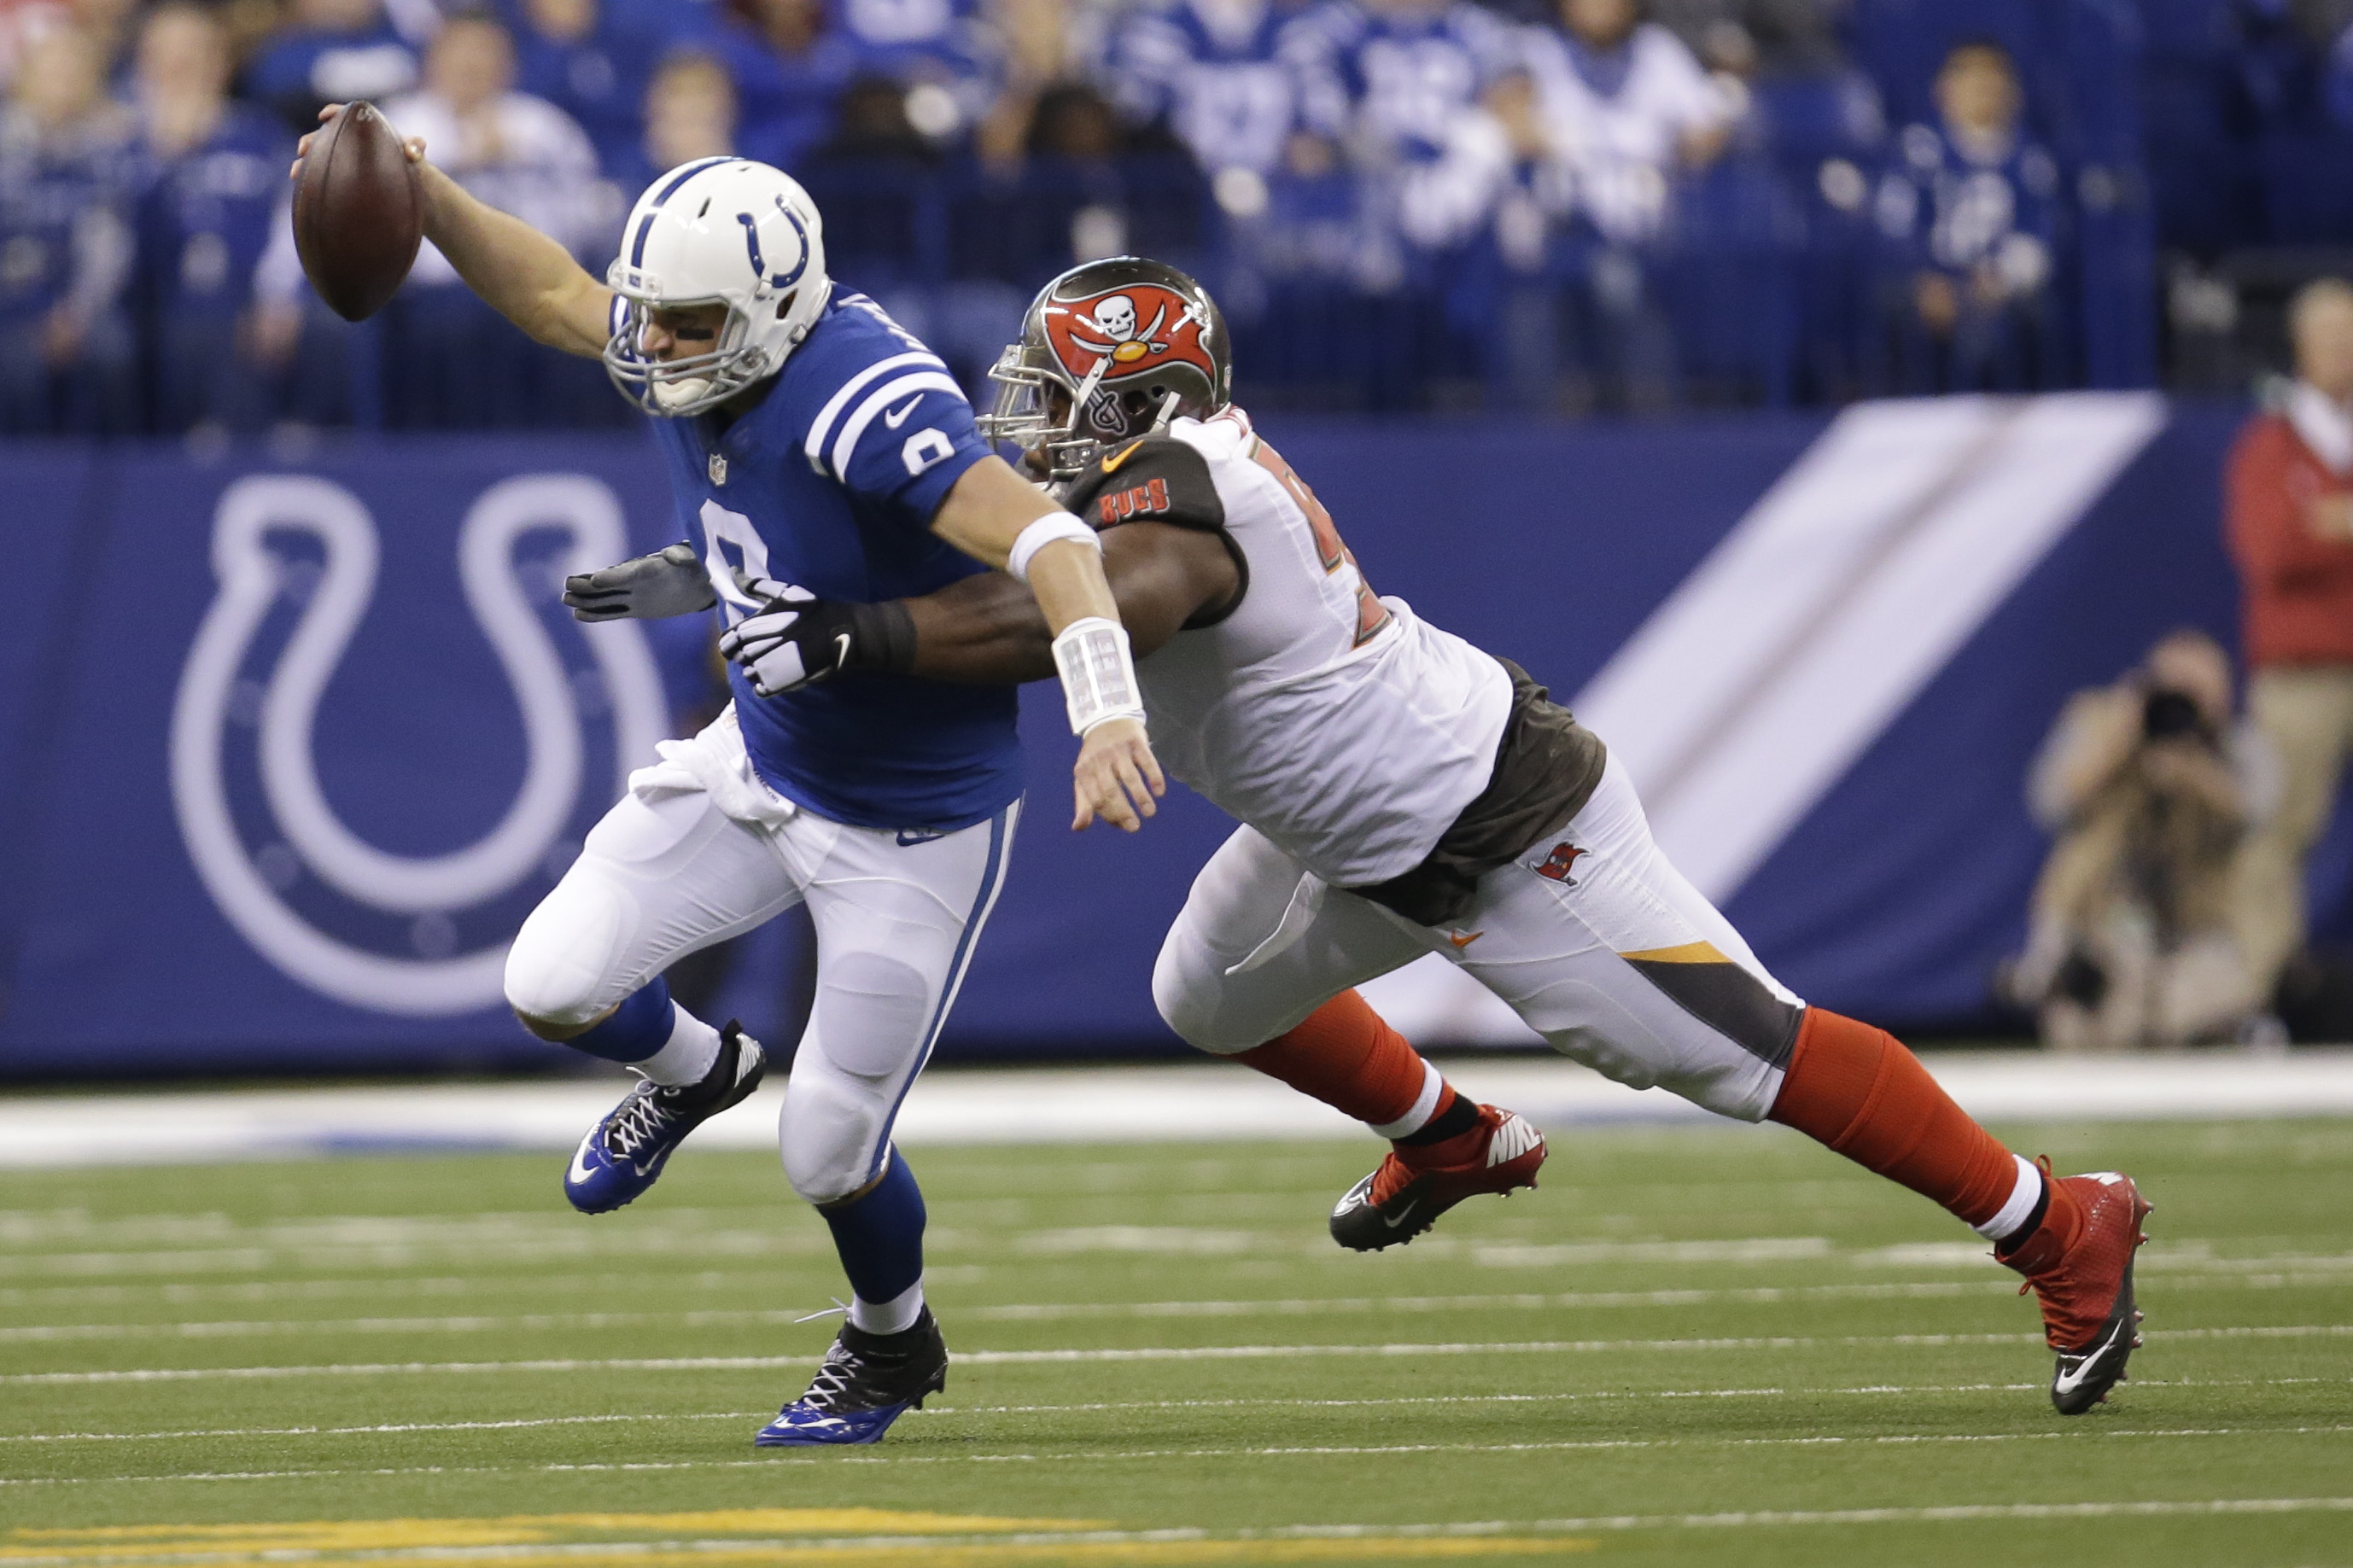 Indianapolis Colts quarterback Matt Hasselbeck (8) is sacked by Tampa Bay Buccaneers defensive tackle Akeem Spence (97) during the first half of an NFL football game in Indianapolis, Sunday, Nov. 29, 2015. (AP Photo/AJ Mast)